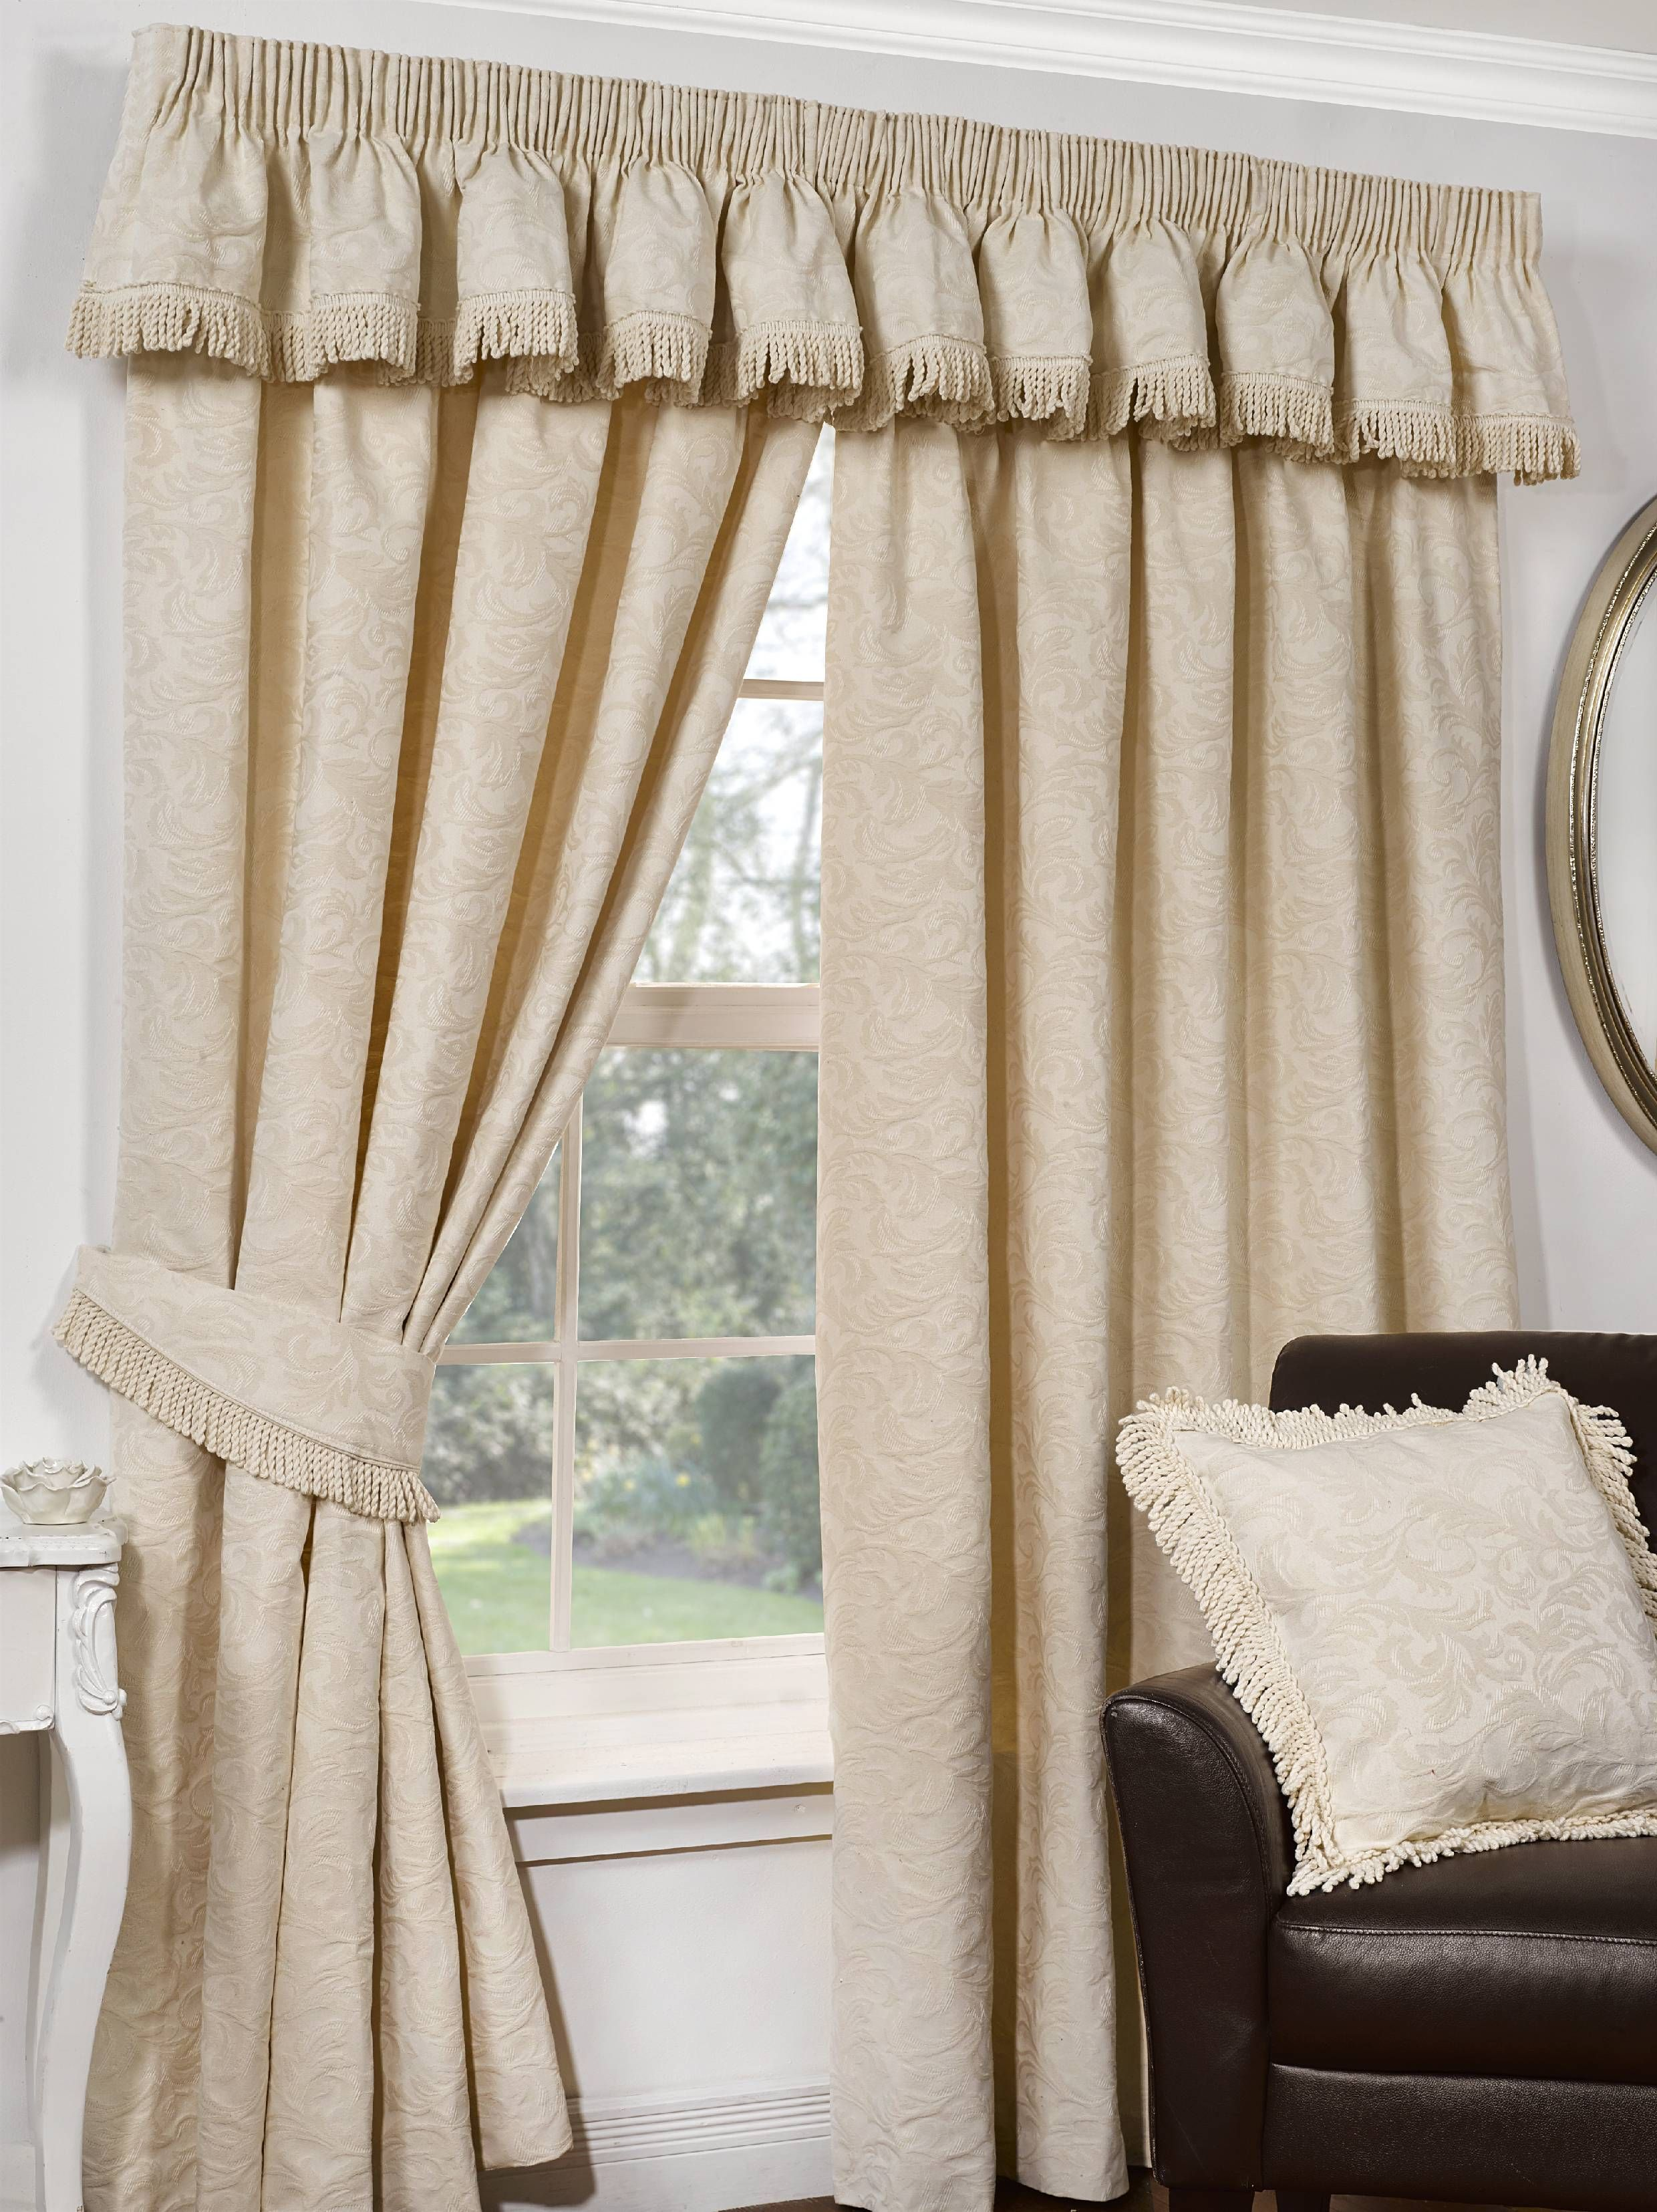 photo black designs models curtain guide este inspiring made curtains choosing tierra and custom ready white